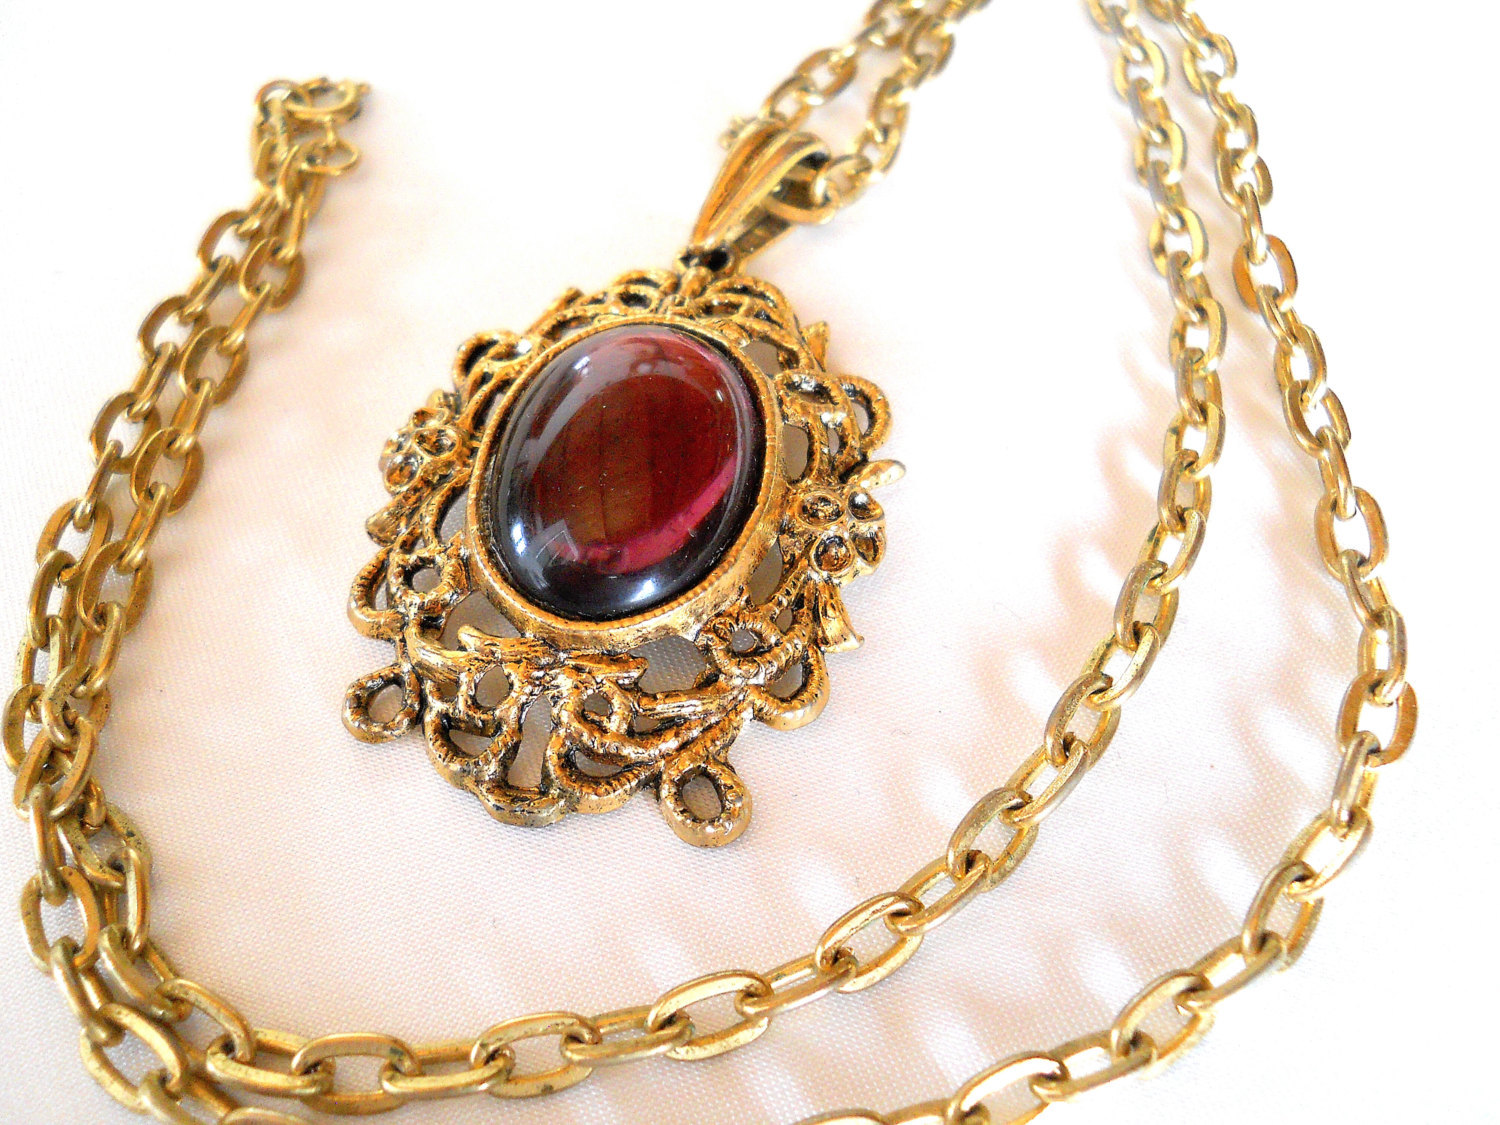 ON CLEARANCE: Vintage Gold Tone Pendant Necklace with Amethyst Oval Cabochon Pen image 4